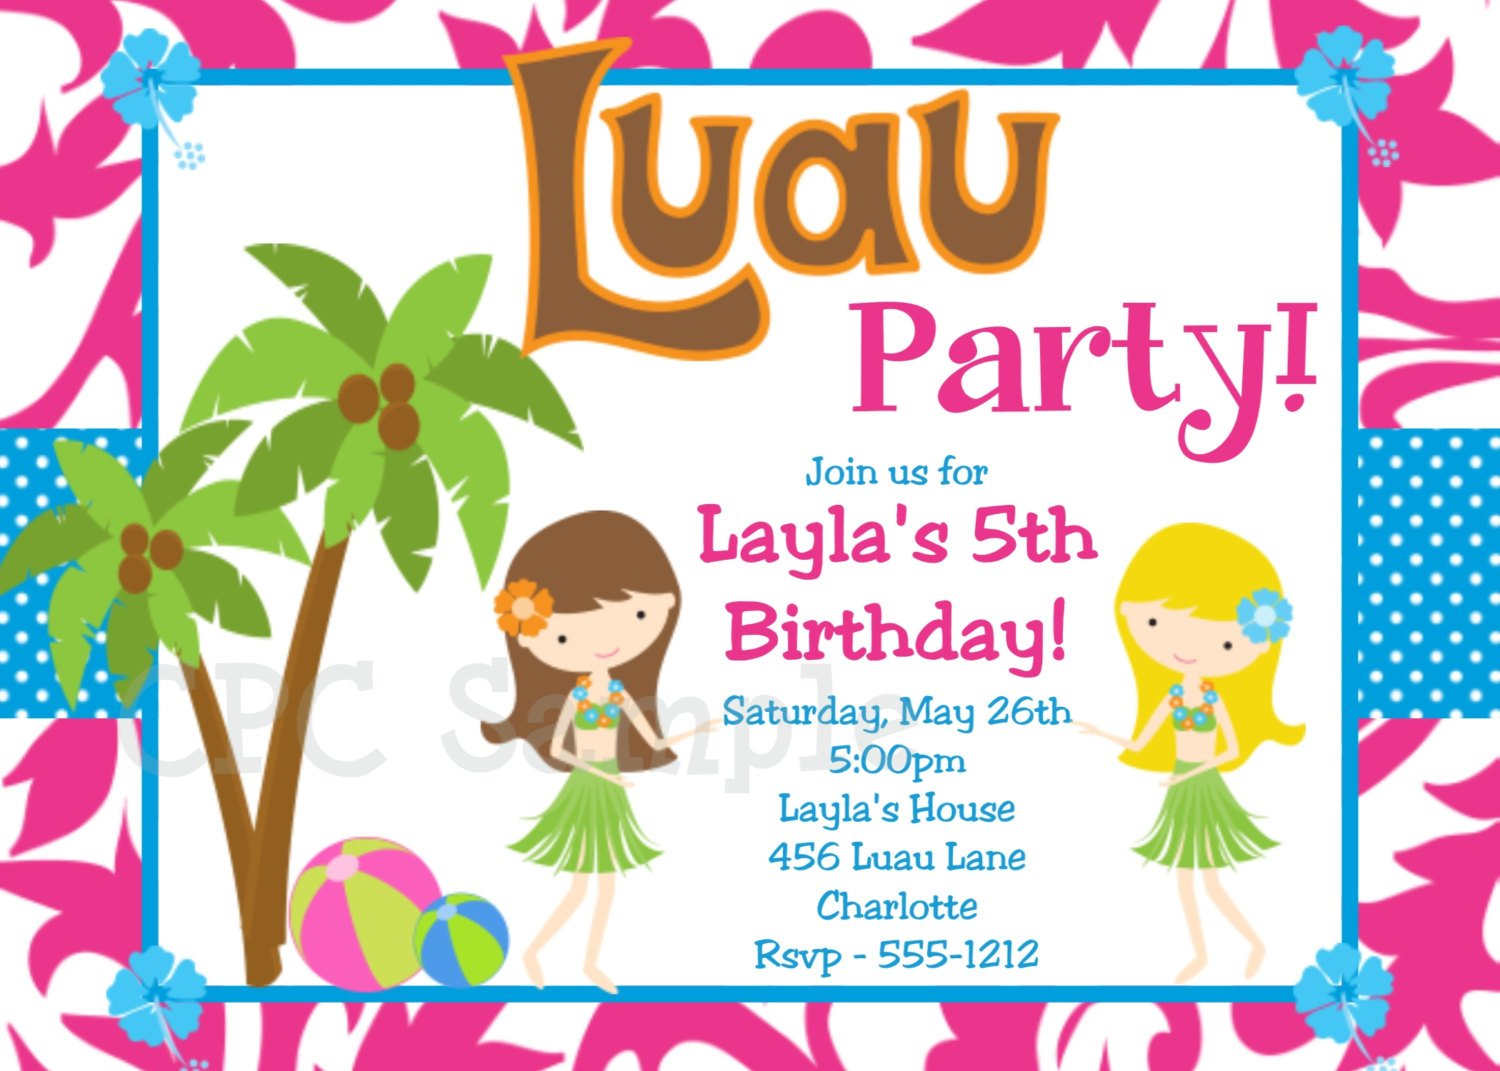 5th luau birthday party invitation wording bagvania free printable 5th luau birthday party invitation wording filmwisefo